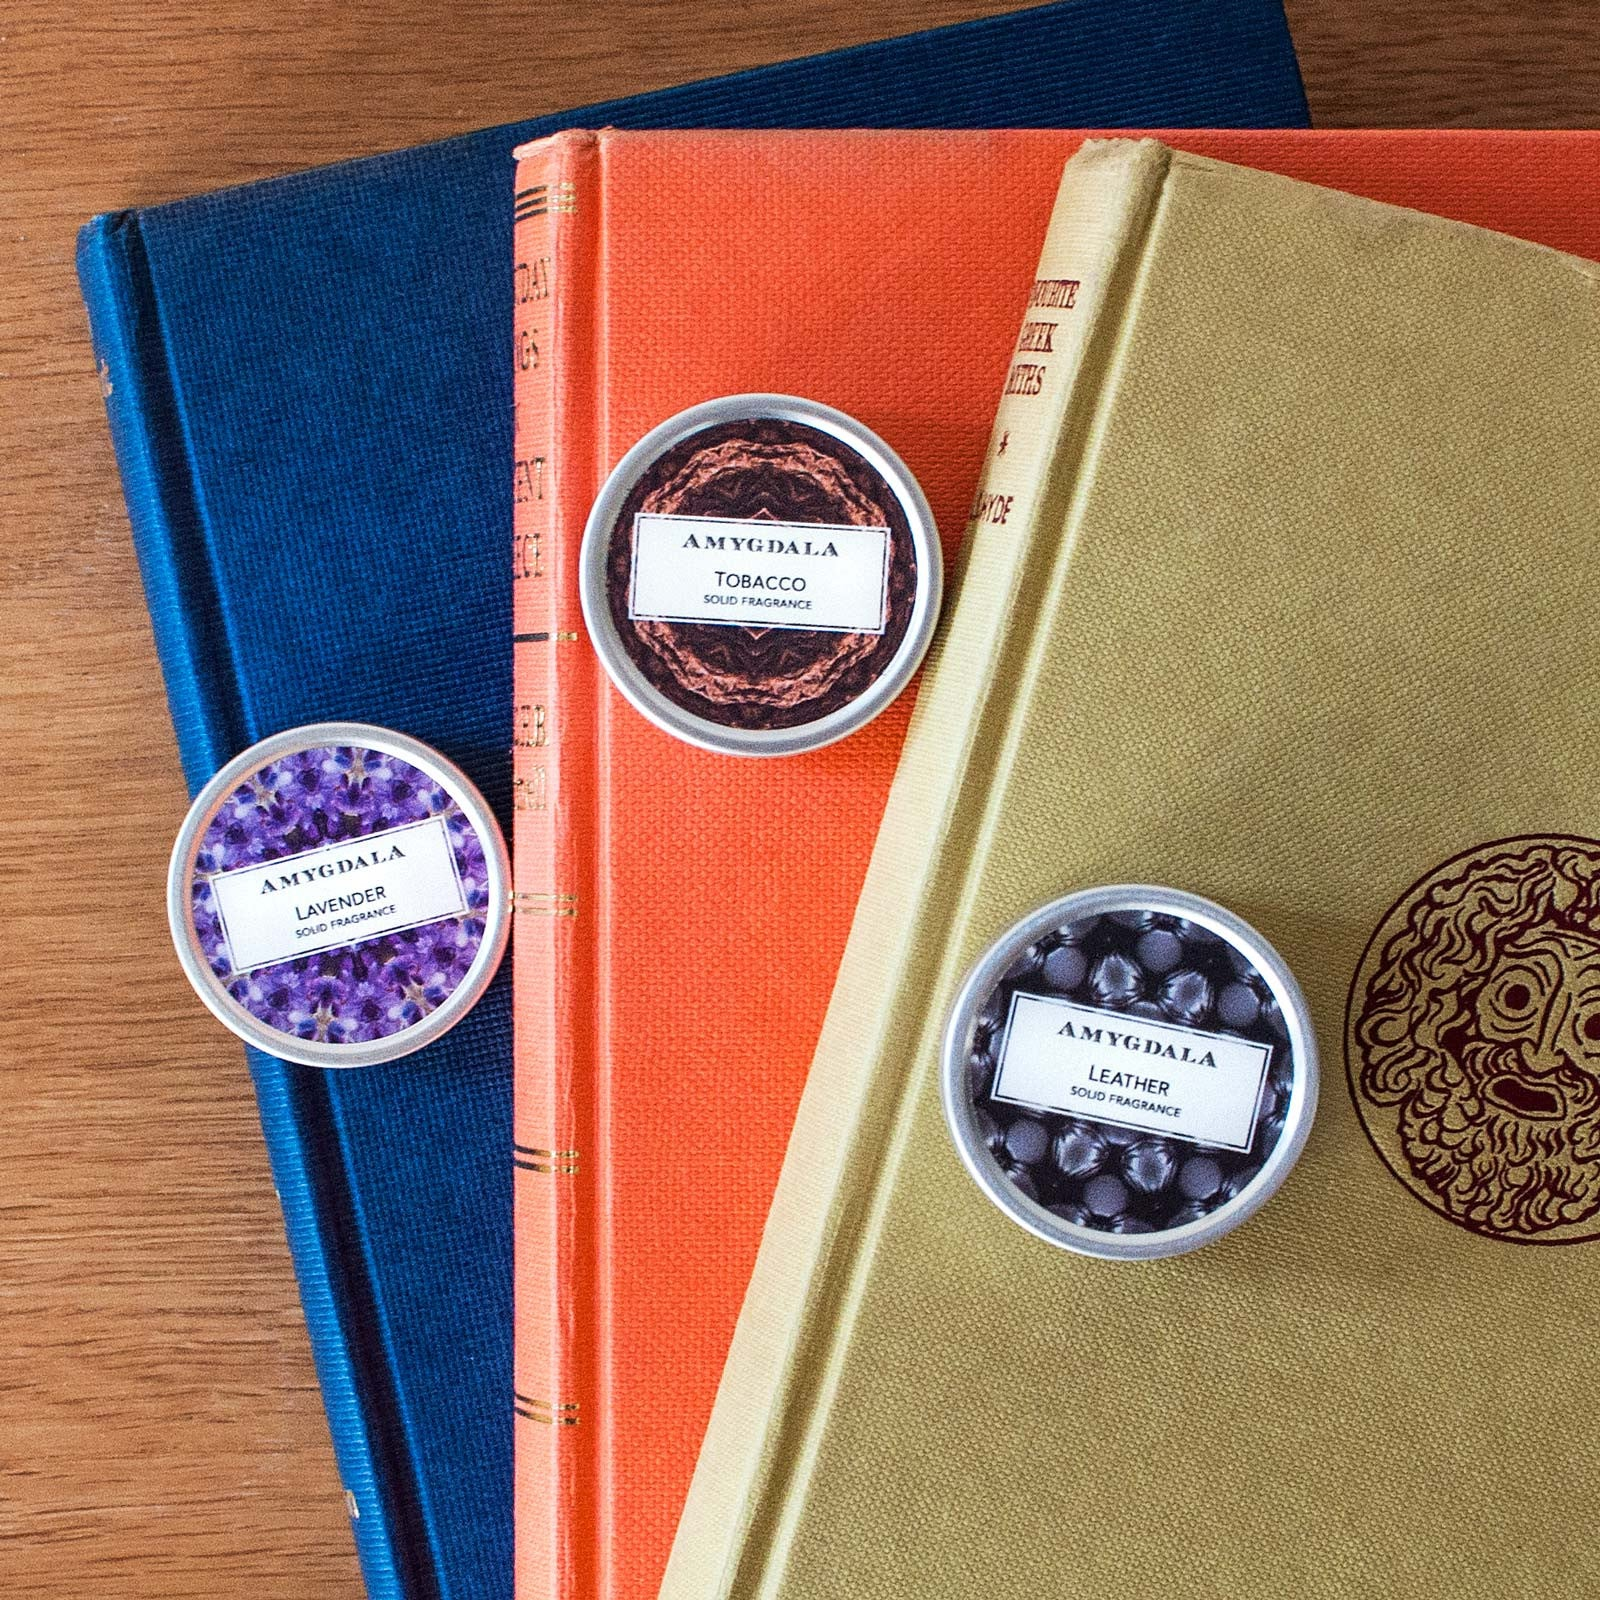 Leather tobacco solid perfume blend